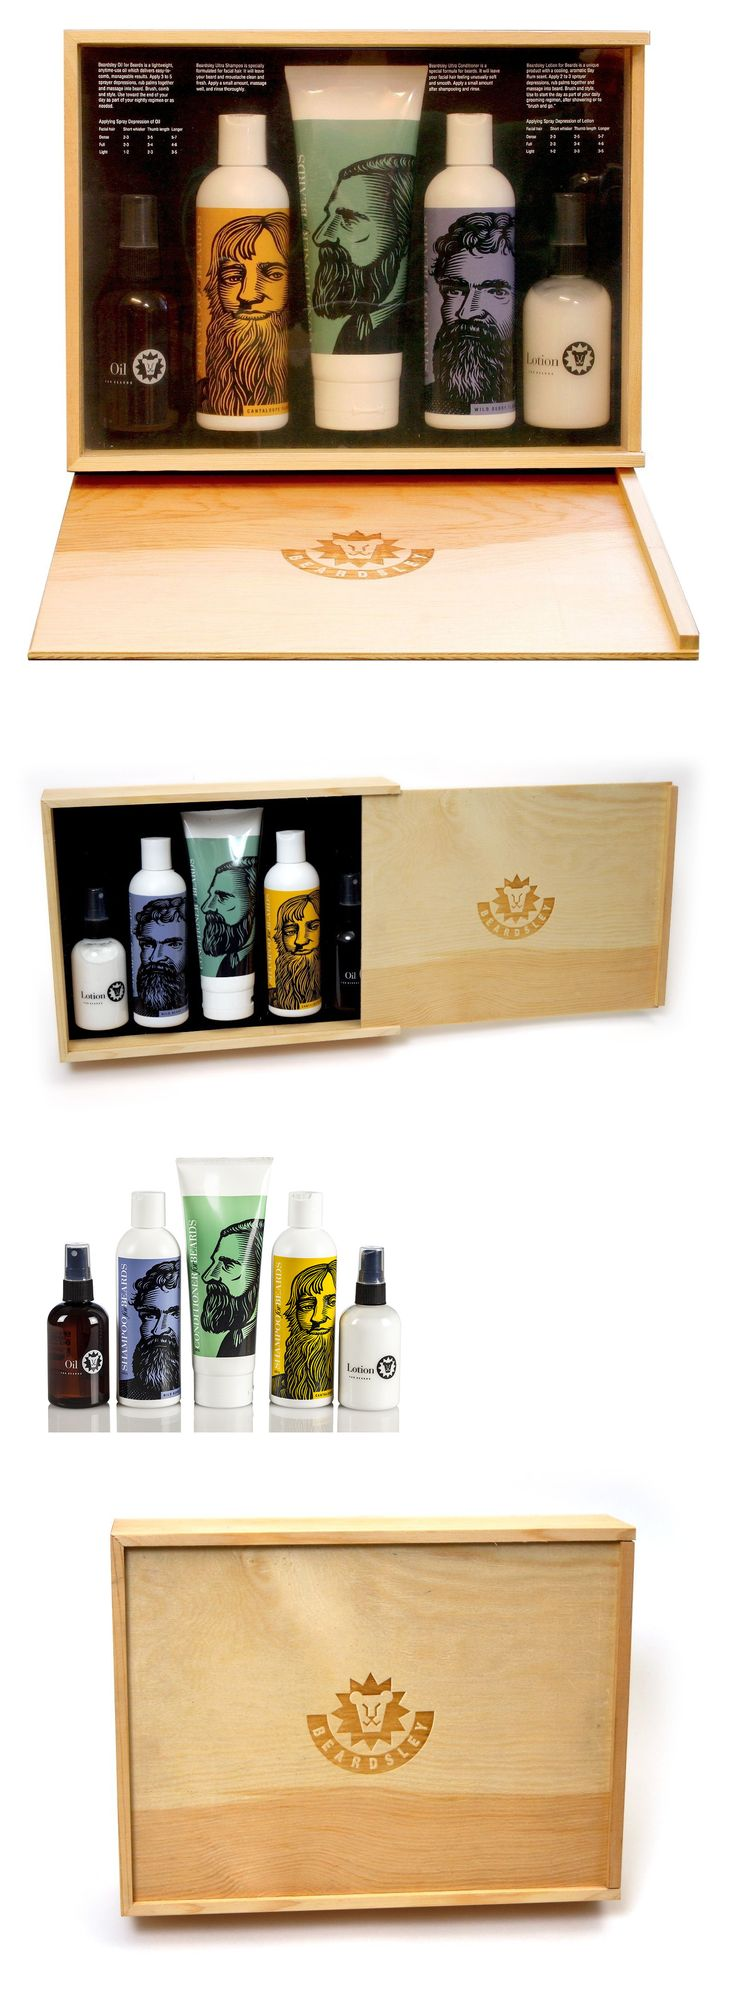 Shaving and Grooming Kits and Sets: Beardsley In The Box Beard Care Set - Beard Shampoo Conditioner Lotion Oil -> BUY IT NOW ONLY: $59.95 on eBay!